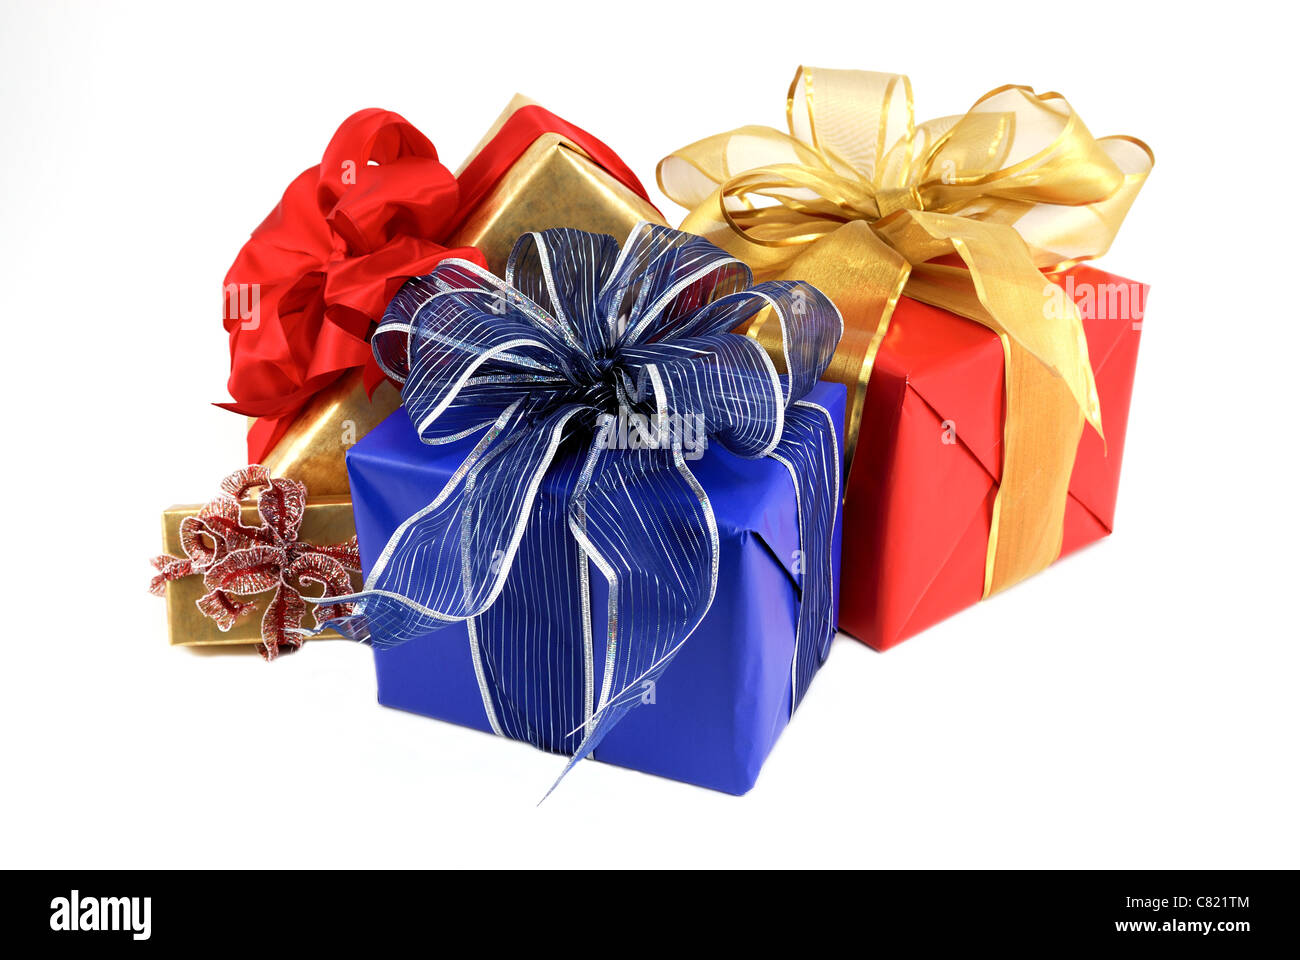 Christmas Gift Packages.Four Gift Wrapped Christmas Packages On A White Background